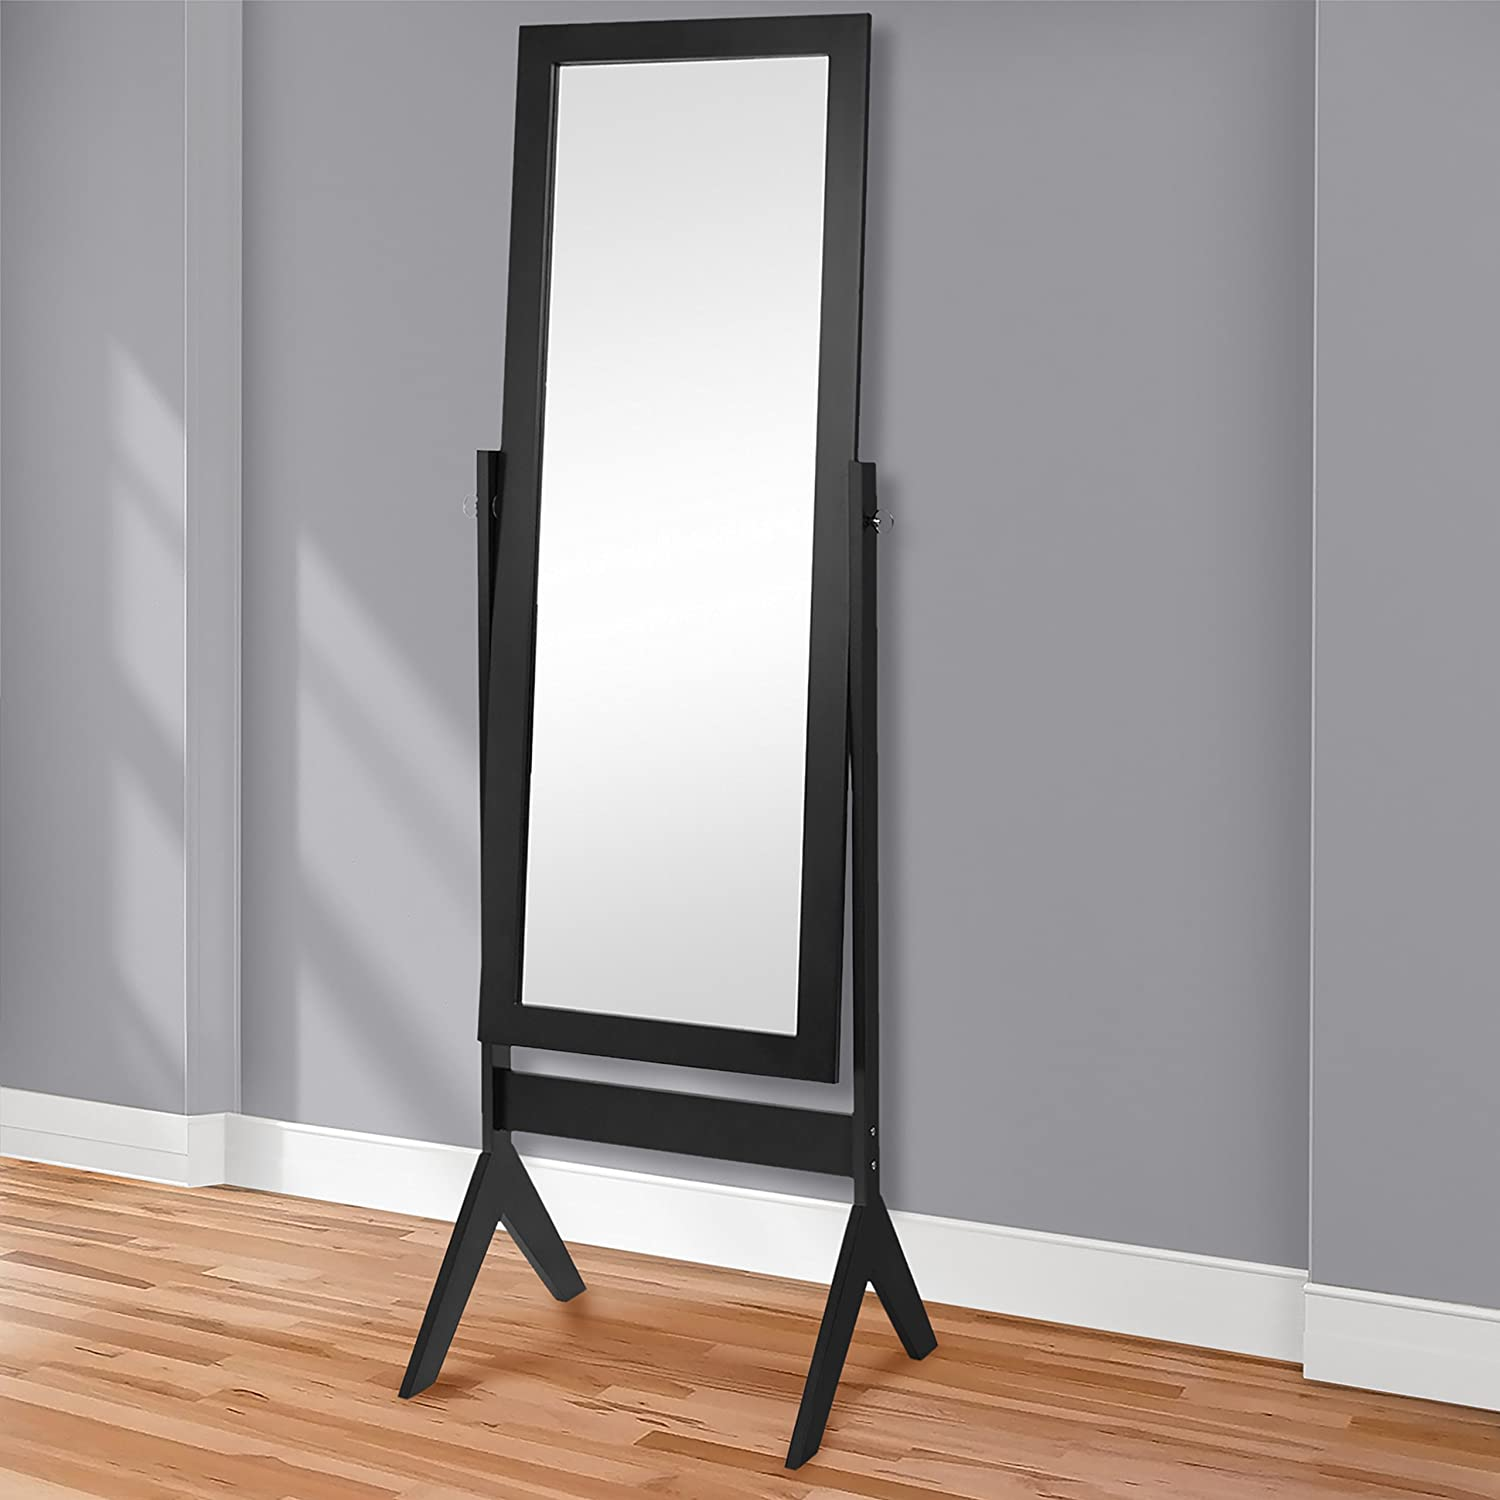 Shop amazon floor mirrors best choice products standing cheval floor mirror bedroom home furniture amipublicfo Gallery